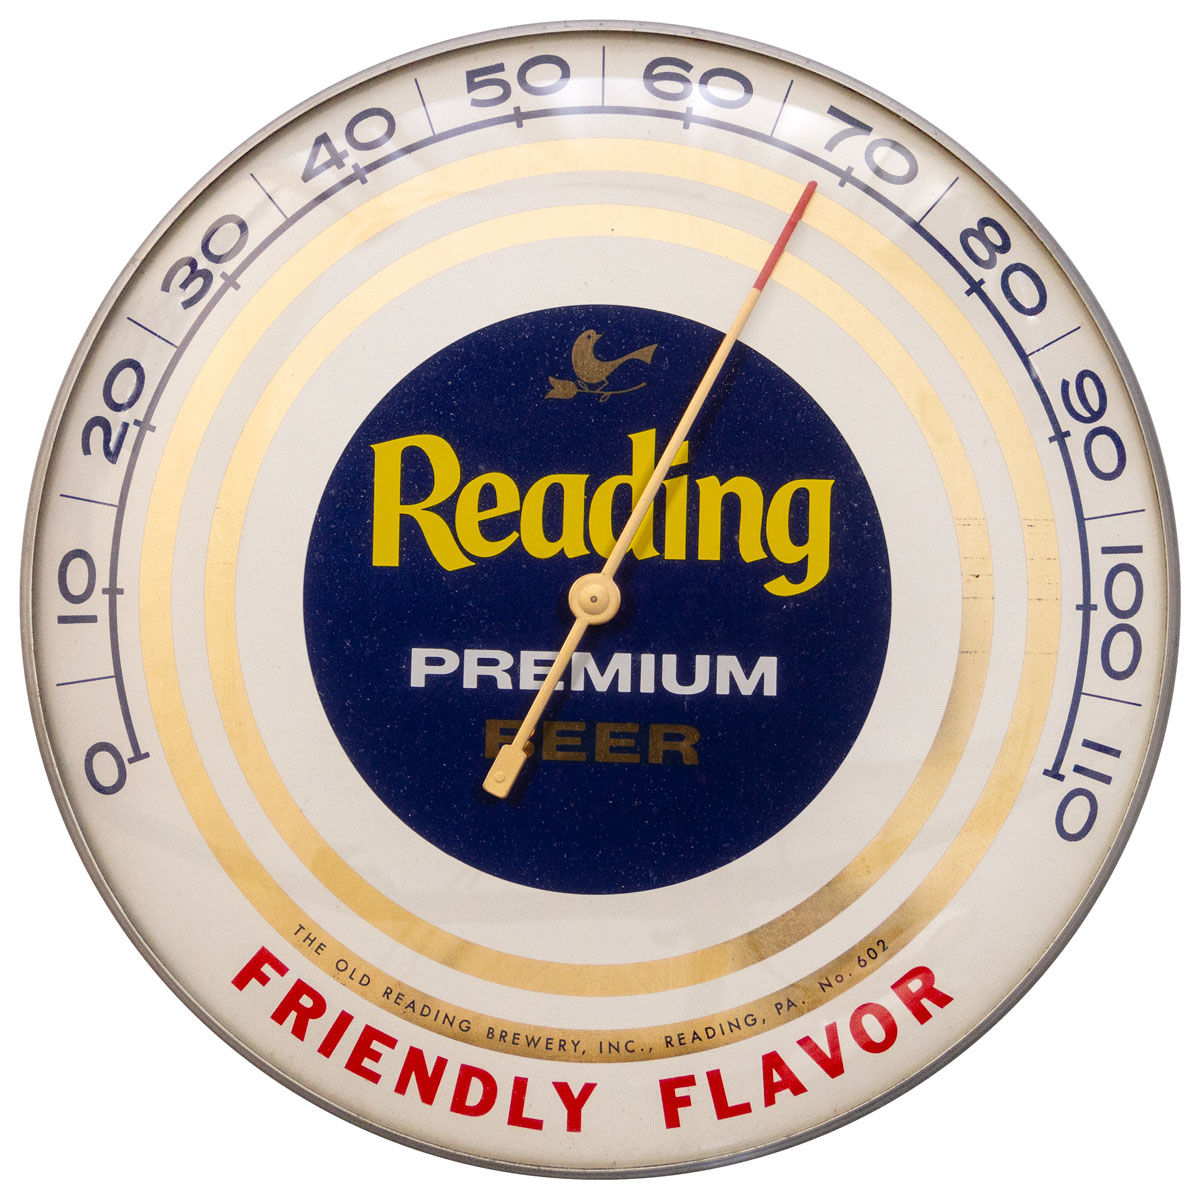 Reading Premium Beer Bubble Thermometer Excellent